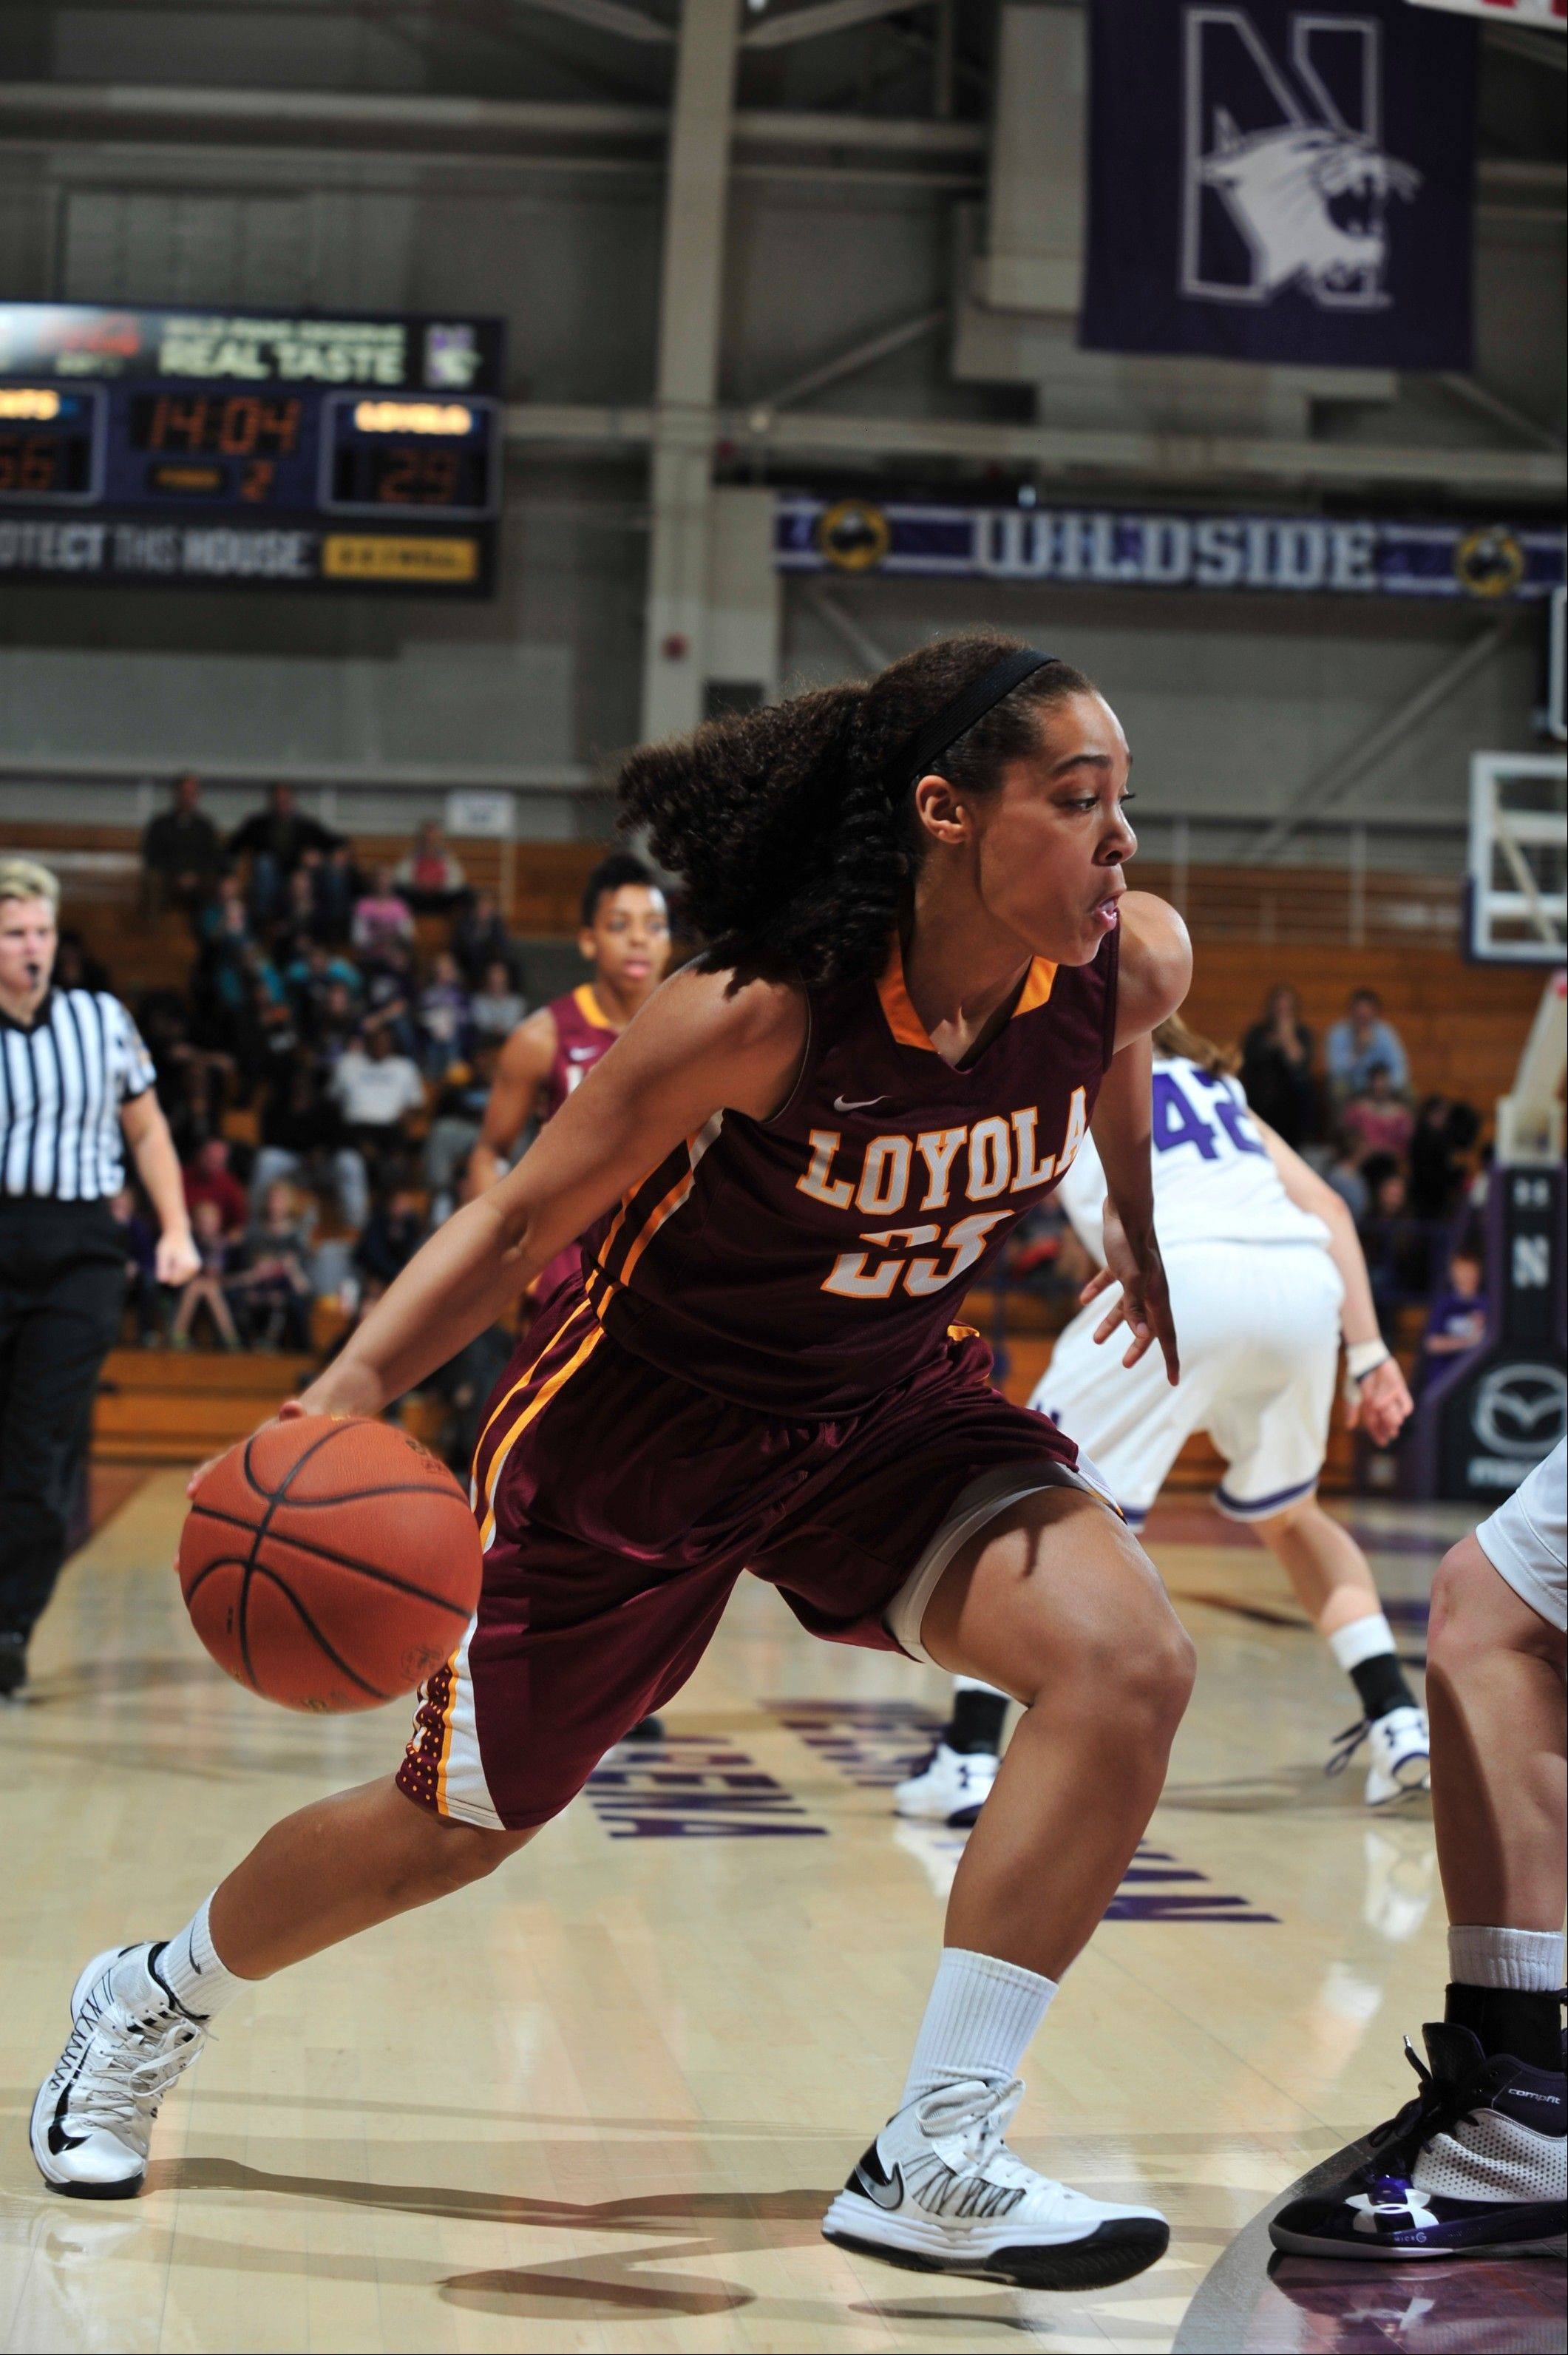 Loyola University freshman Becca Smith of South Elgin is getting more and more playing time for the Ramblers, and cracked the starting lineup last weekend.